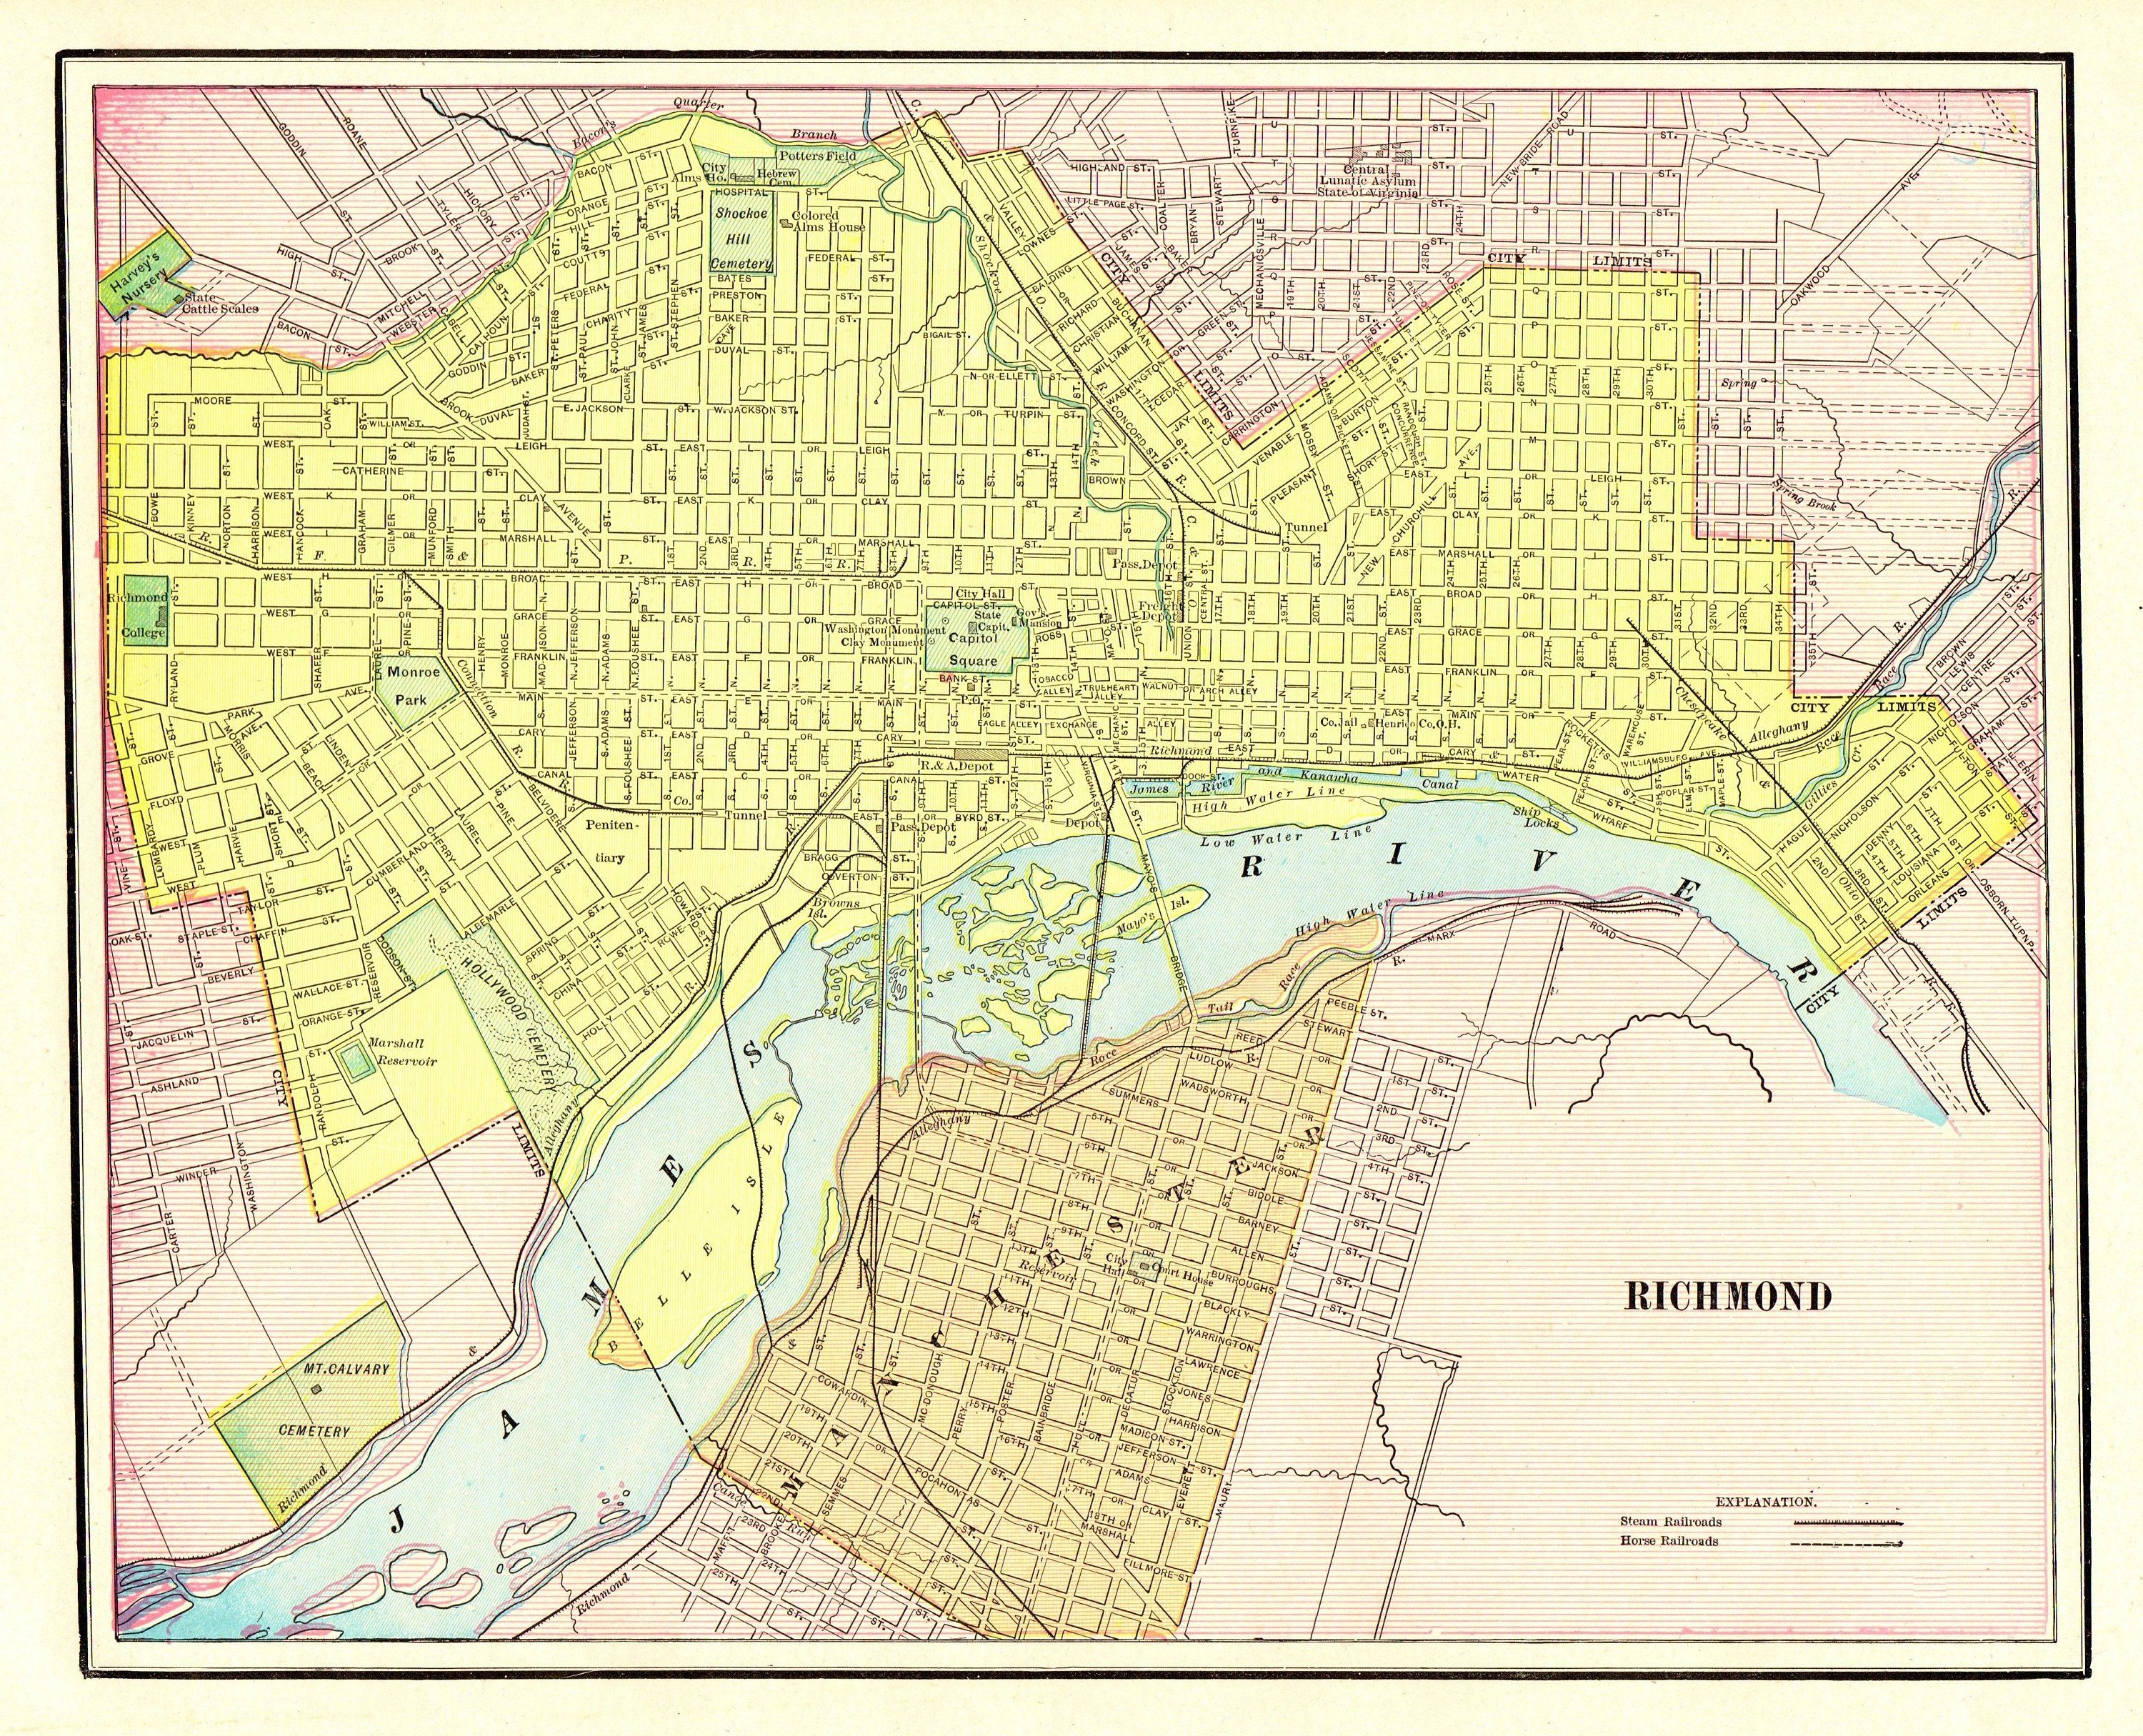 1901 Antique Richmond City Map Reproduction Print Of Richmond - Richmond-virginia-on-us-map